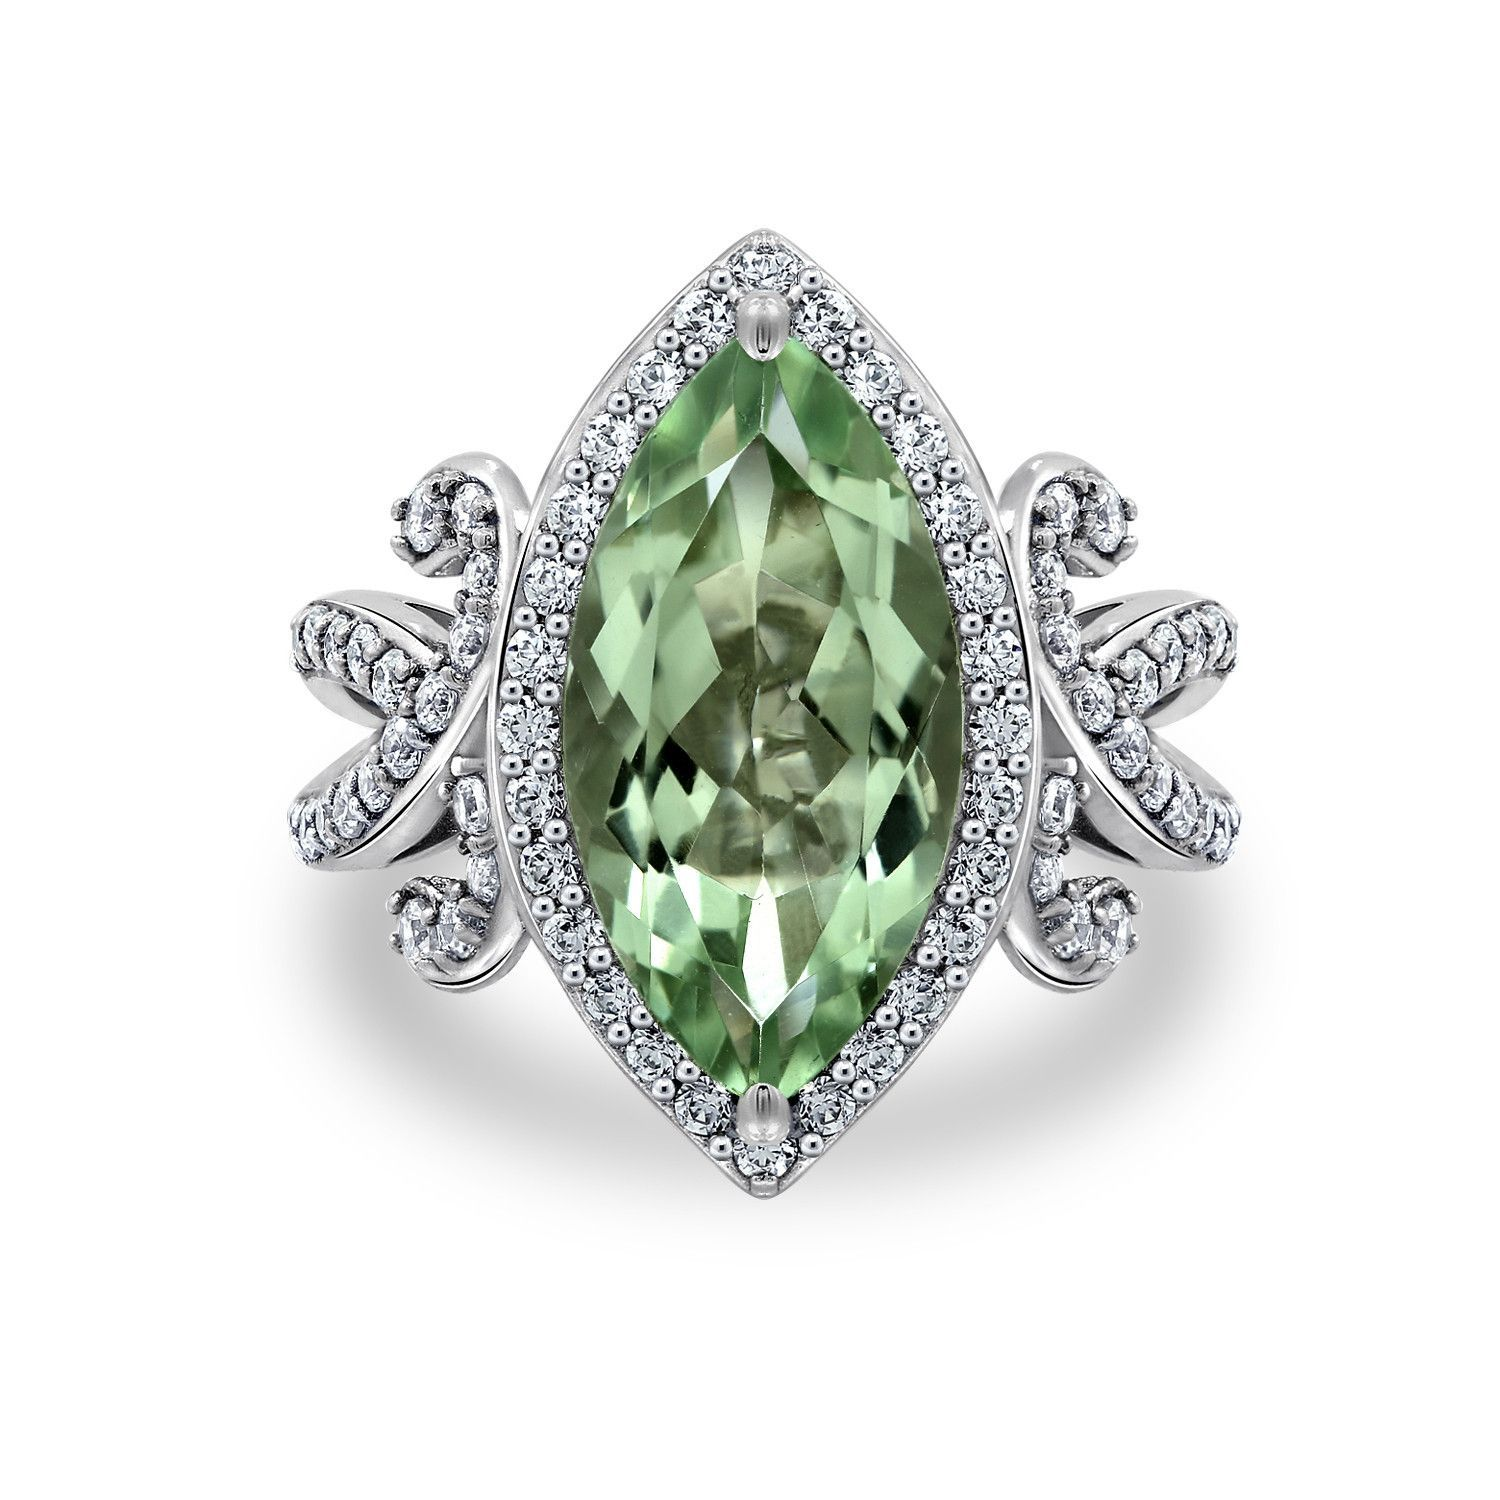 EC by Erica Courtney Lime Quartz Marquise Ring